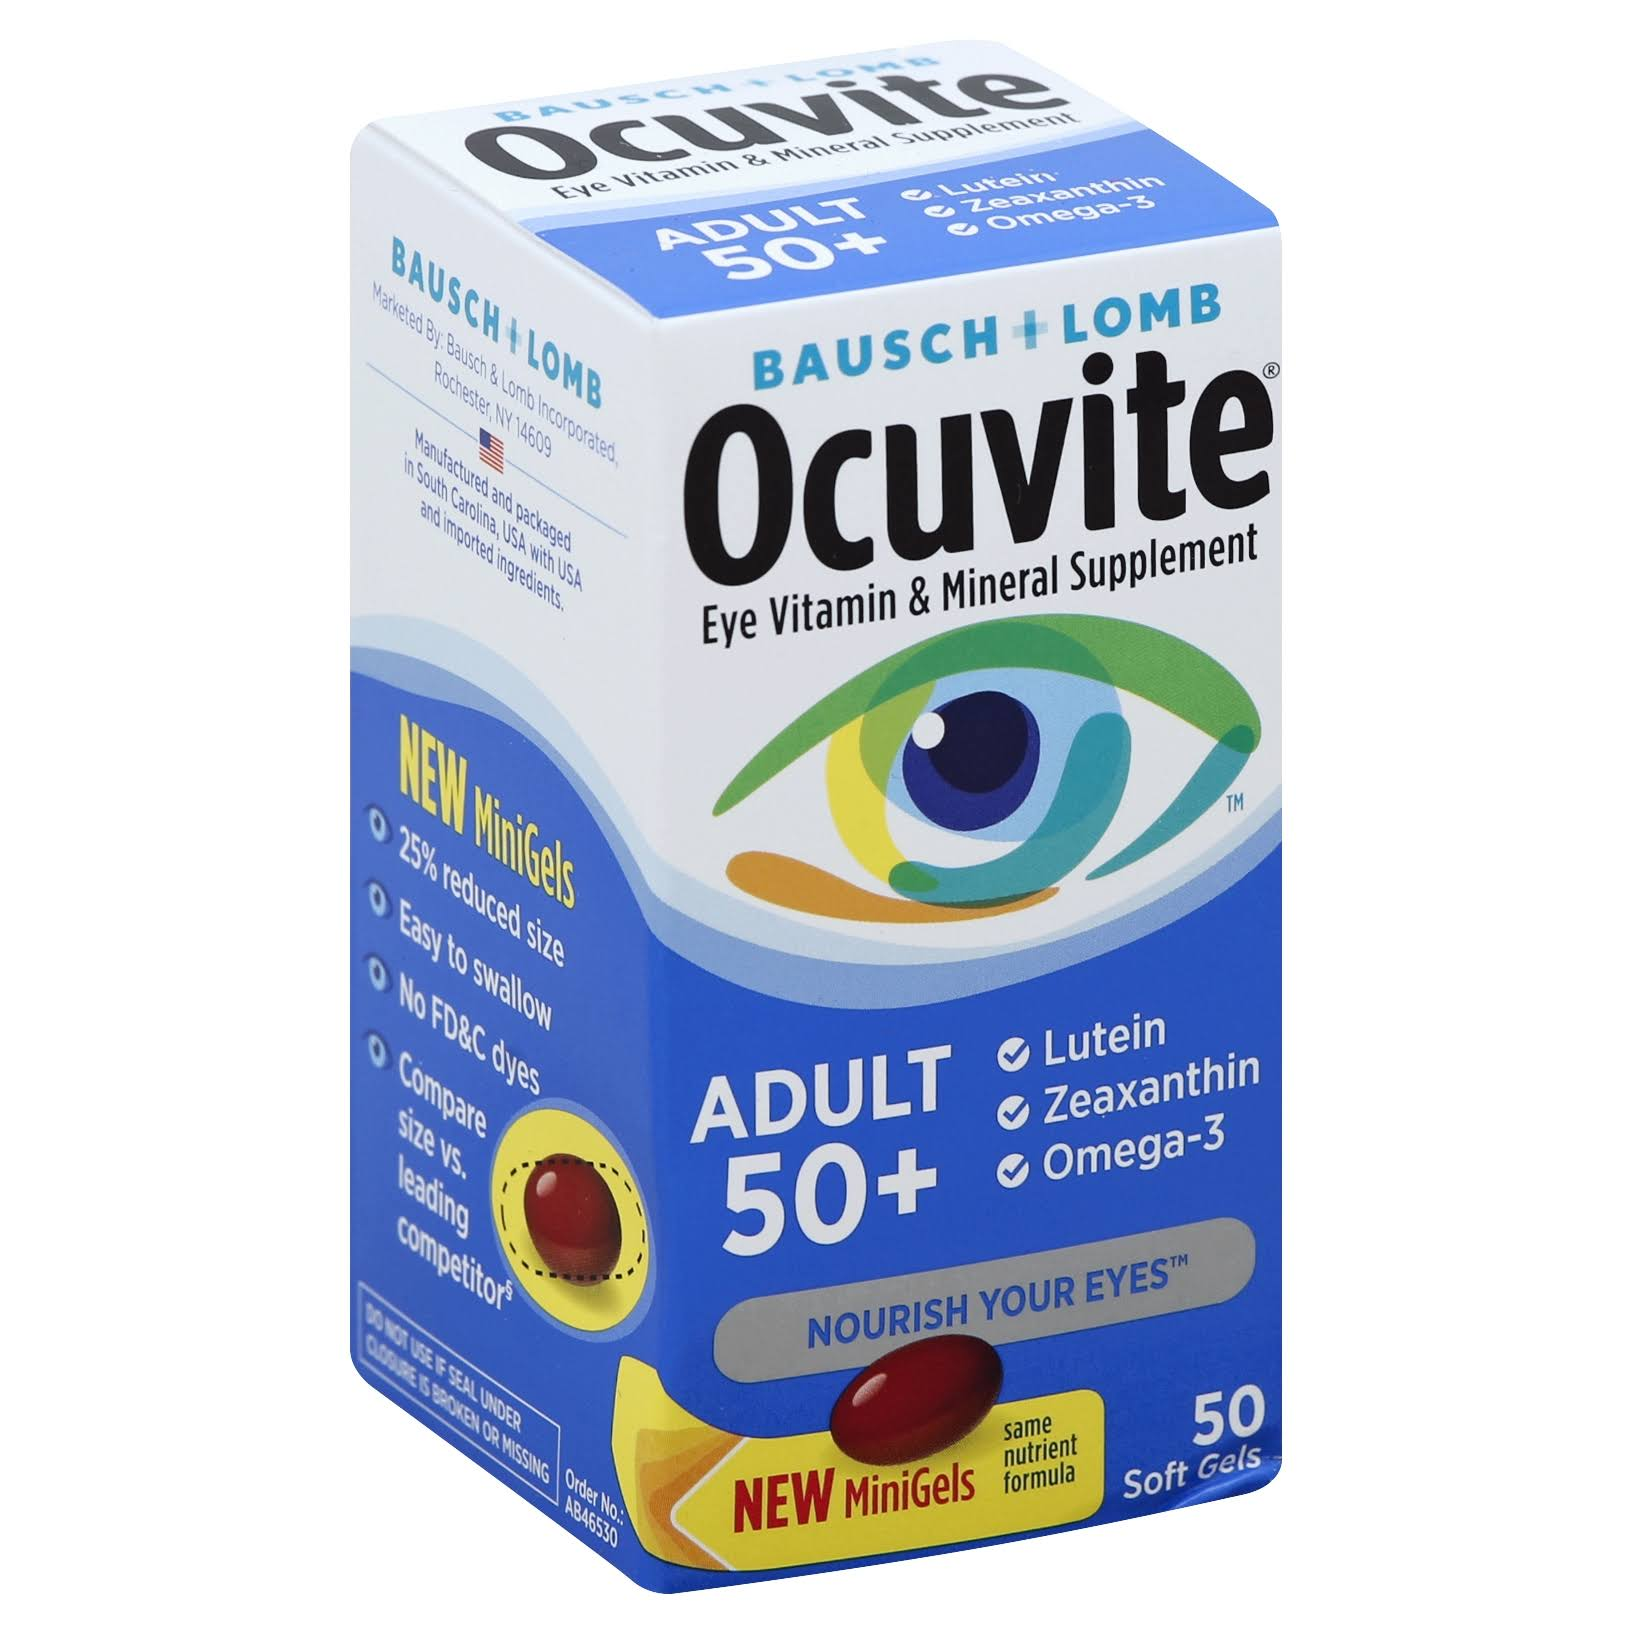 Bausch & Lomb Ocuvite Adult 50+ Eye Vitamin & Mineral Softgels - 50 Softgels